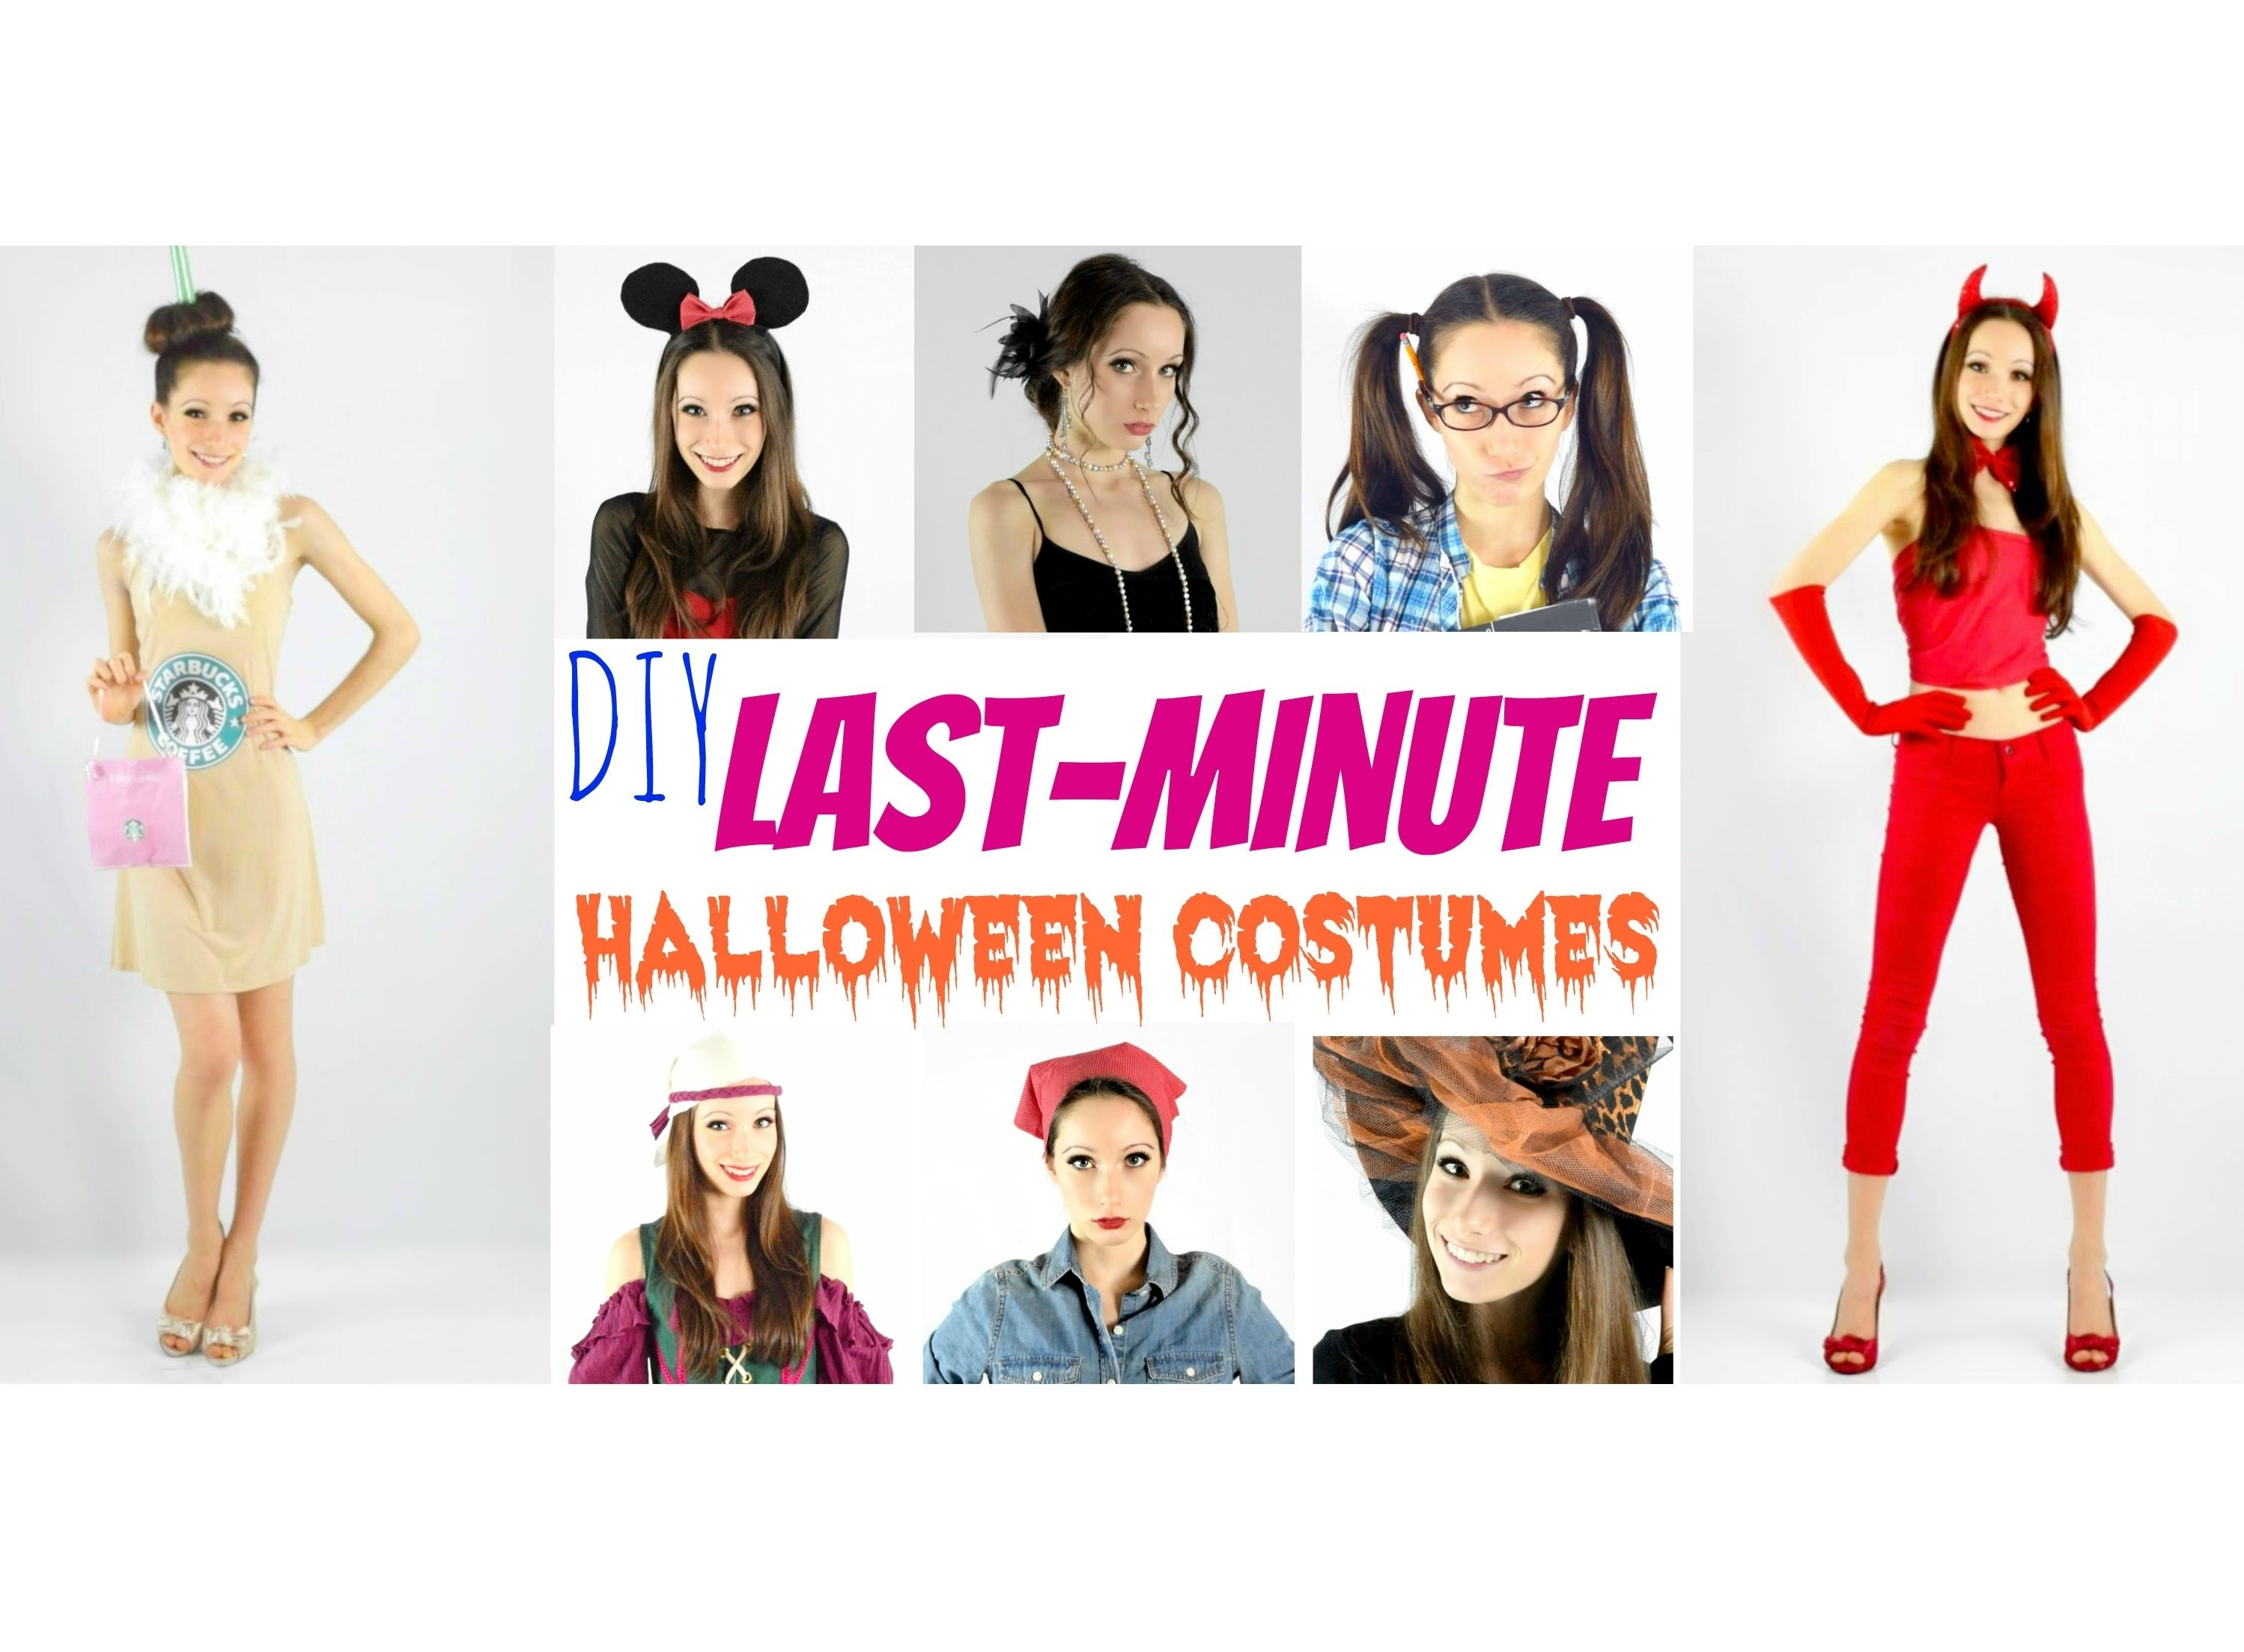 10 Great Really Easy Halloween Costume Ideas 15 diy halloween costumes 2021